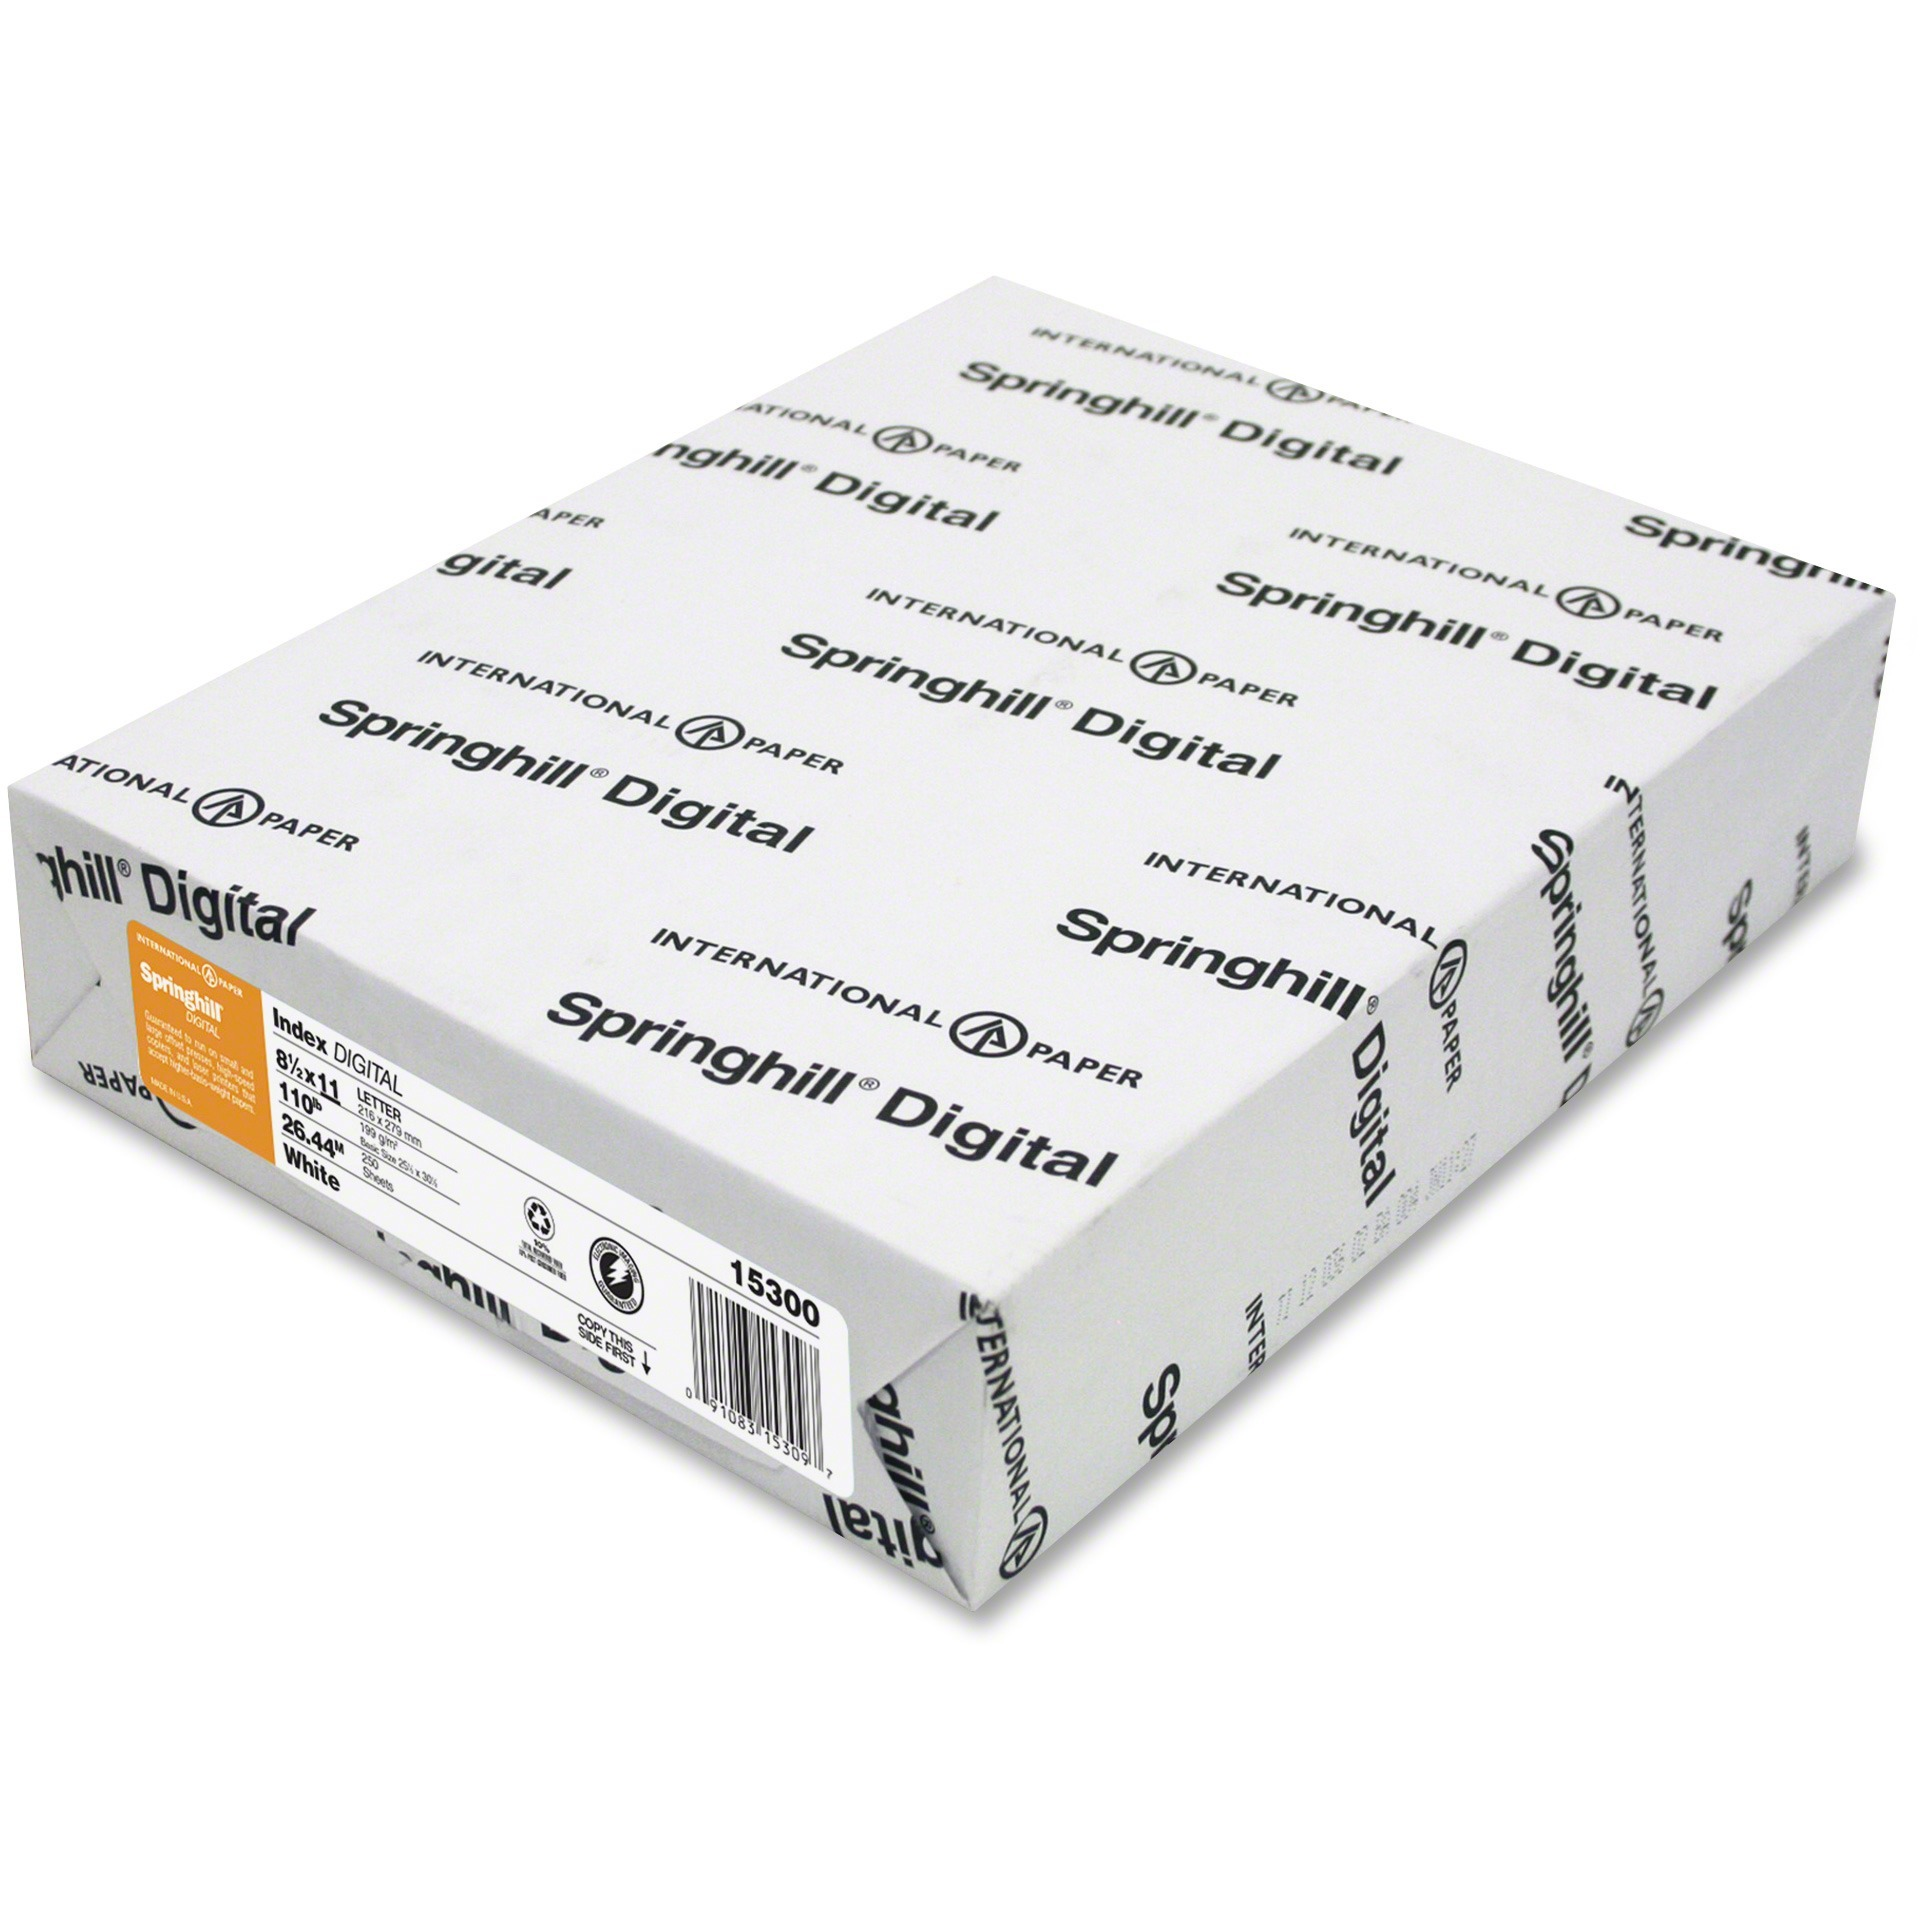 Springhill, SGH015300, Digital Index 110 lb. Paper, 1 Pack, White